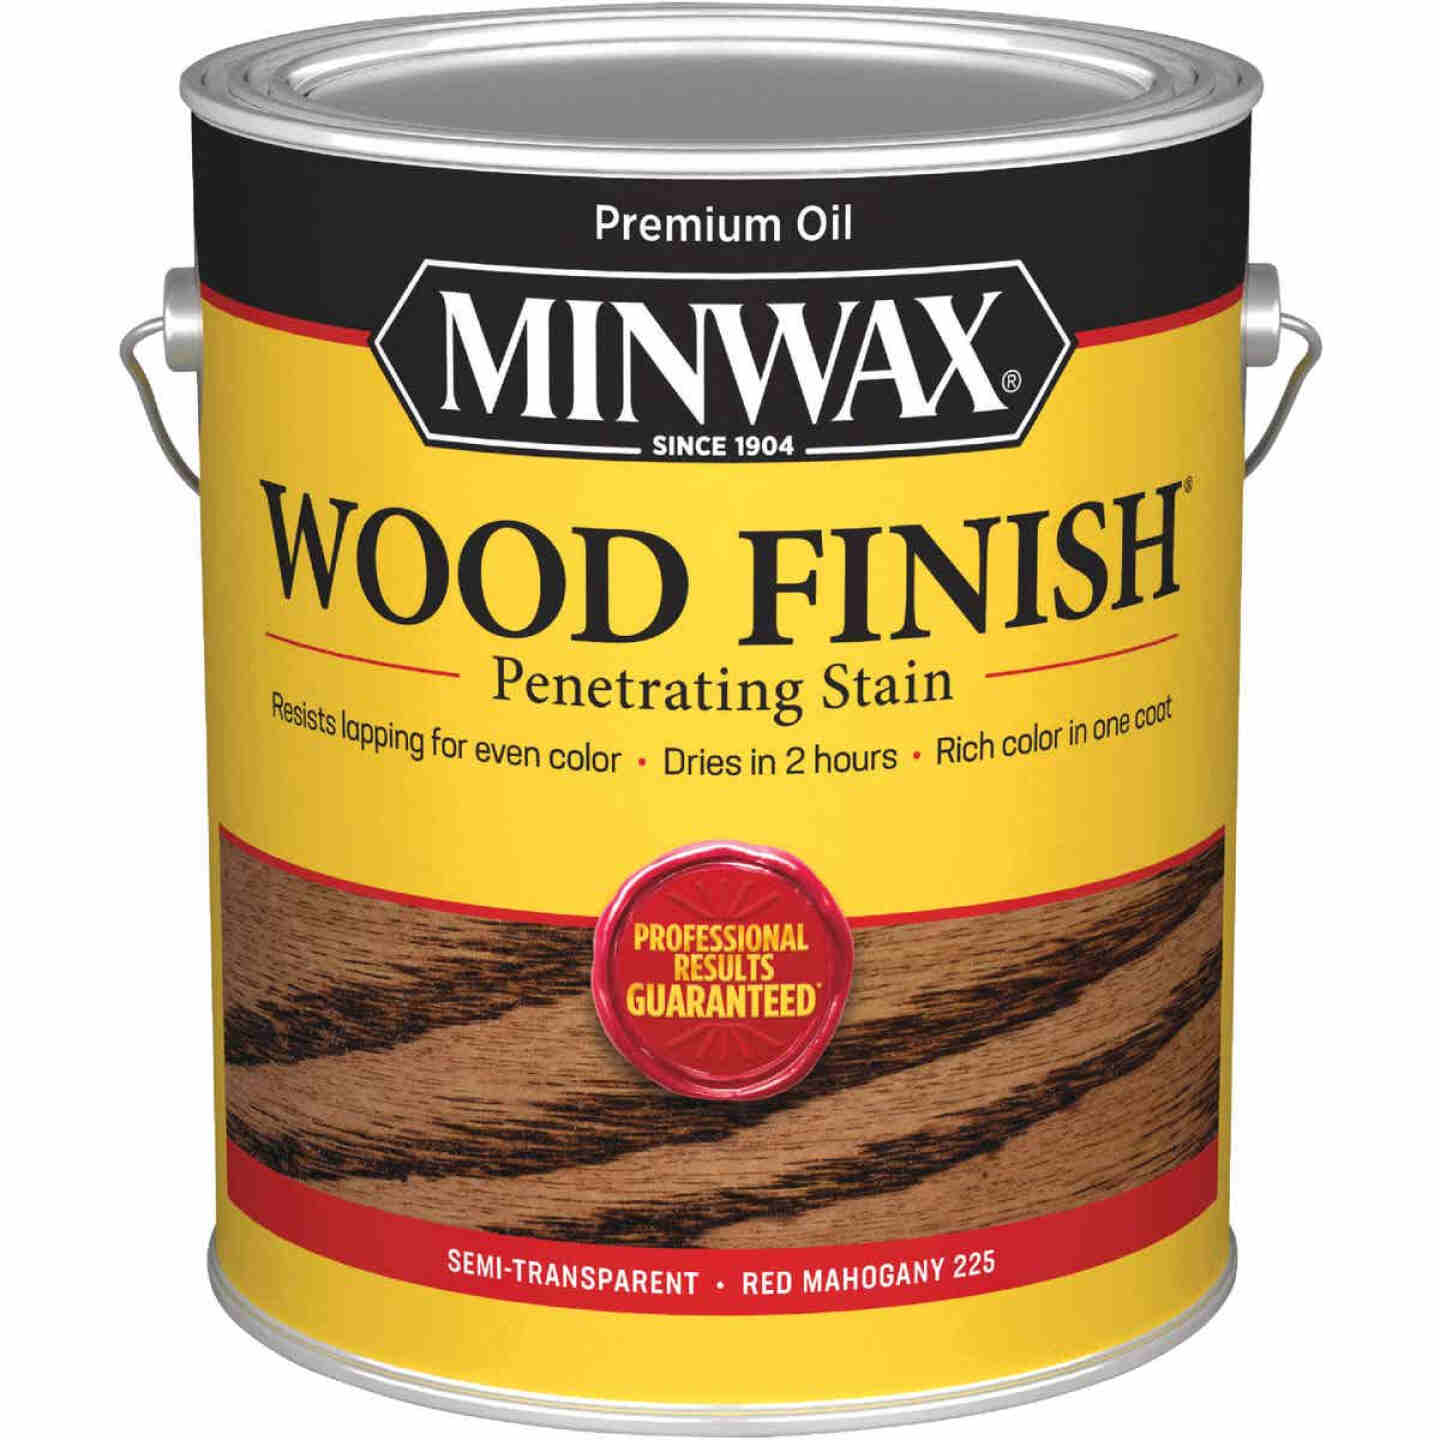 Minwax Wood Finish Penetrating Stain, Red Mahogany, 1 Gal. Image 1